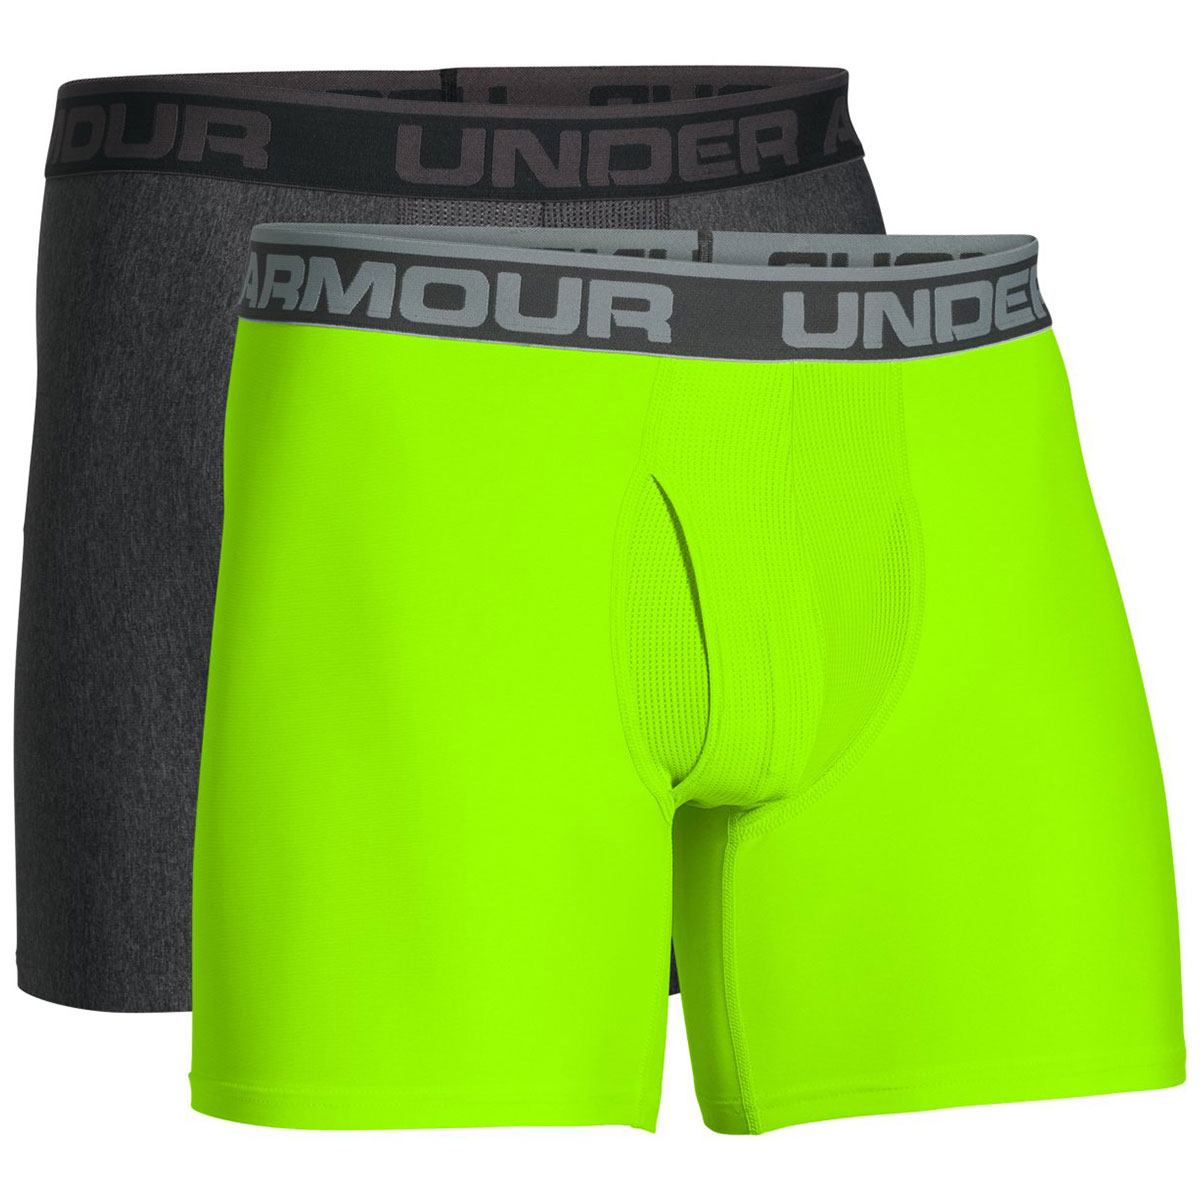 Under armour 2017 mens o series 6 boxerjock 2 pack sports for Mens under armour under shirt